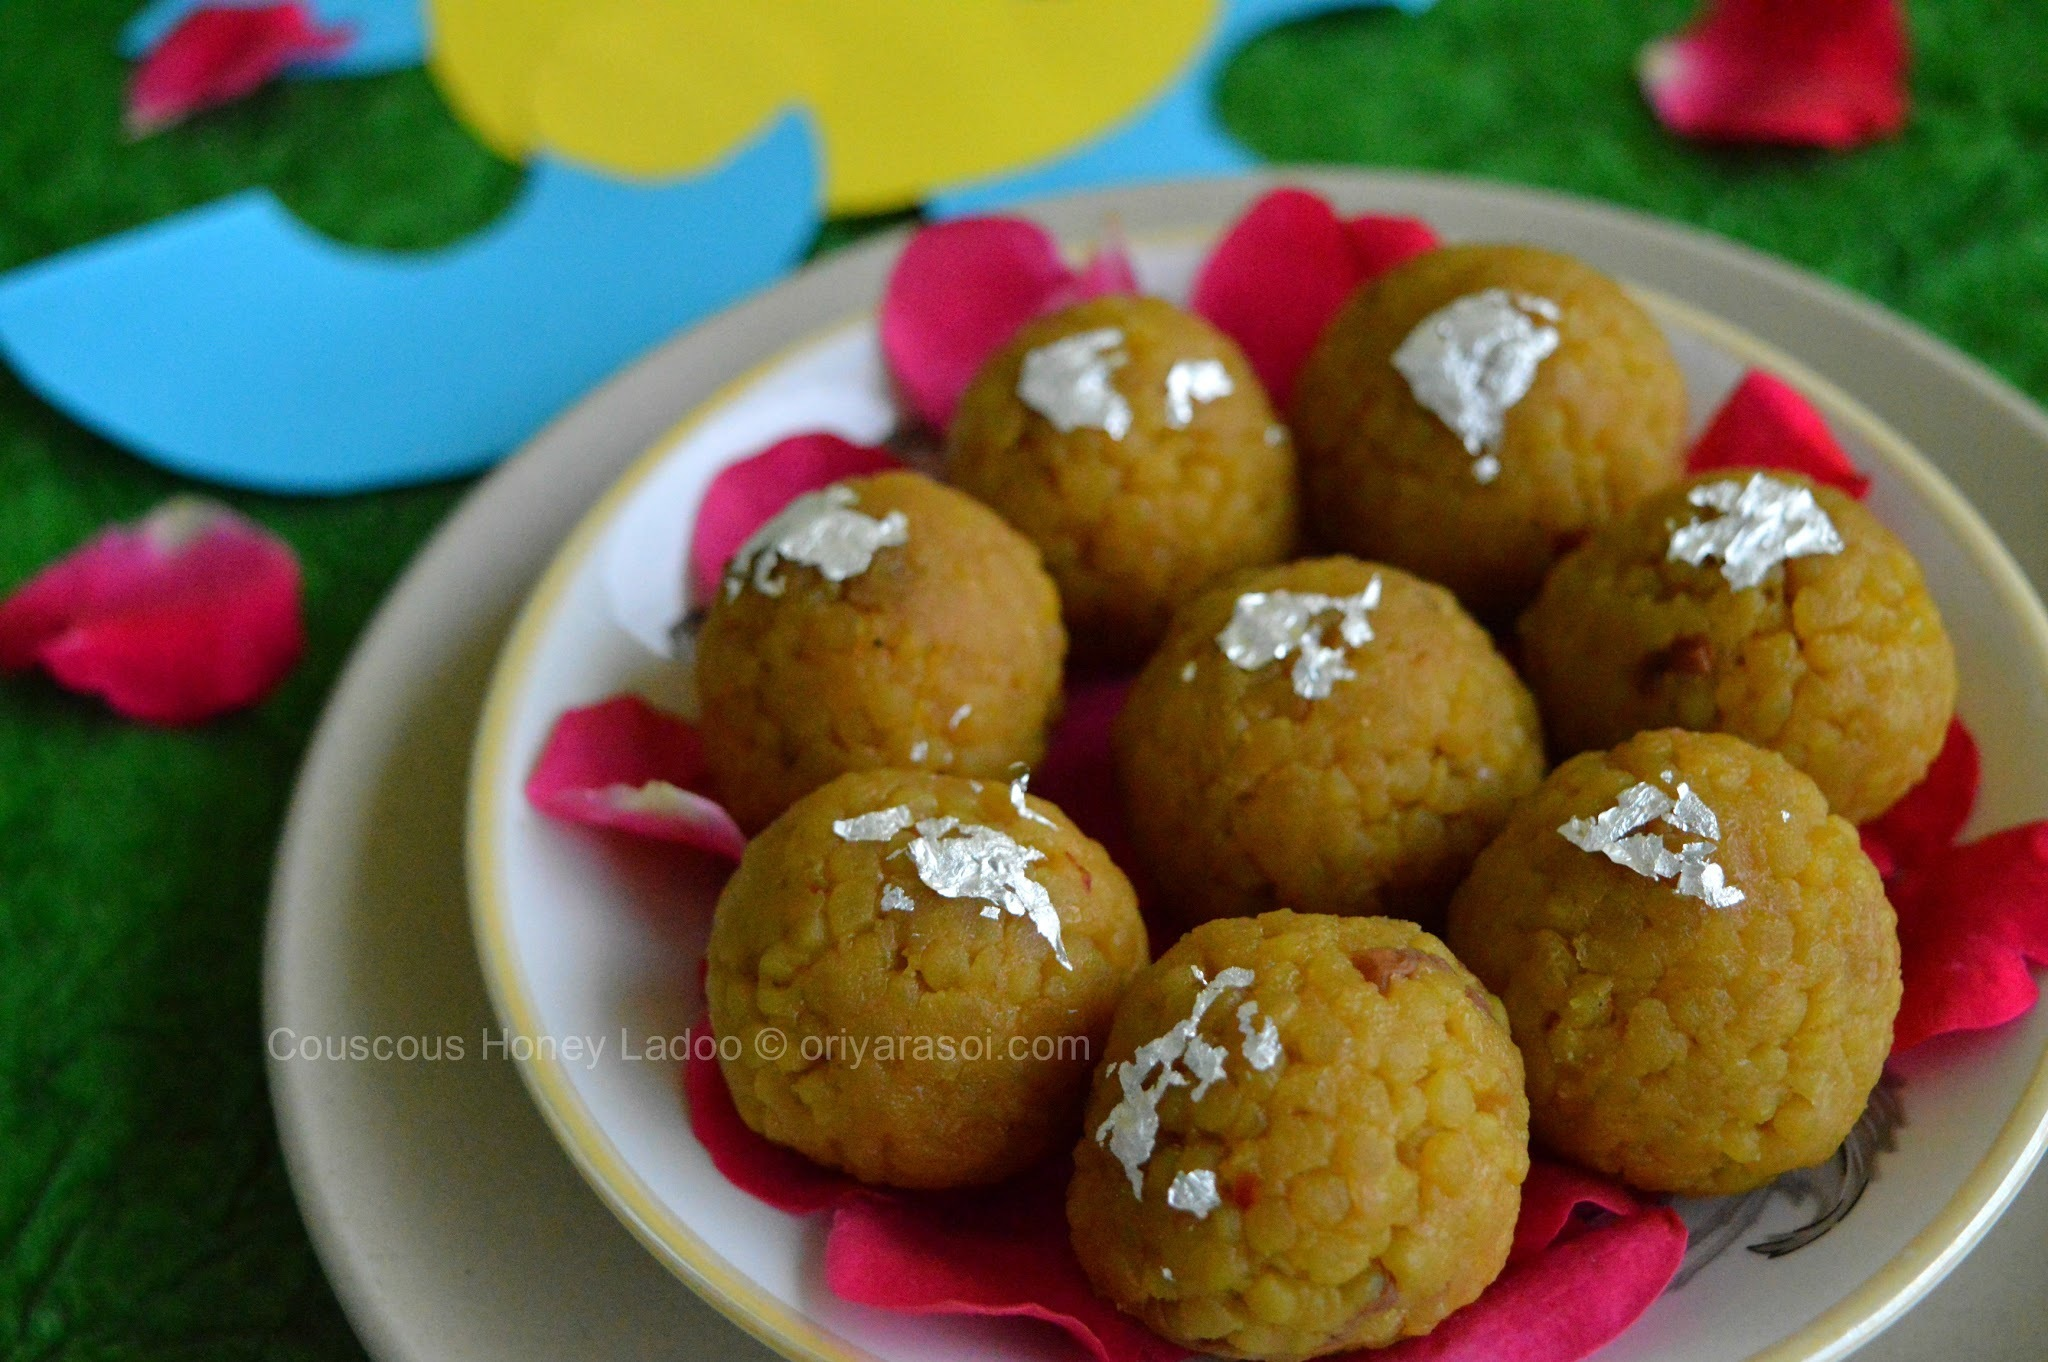 Couscous Honey Laddoo